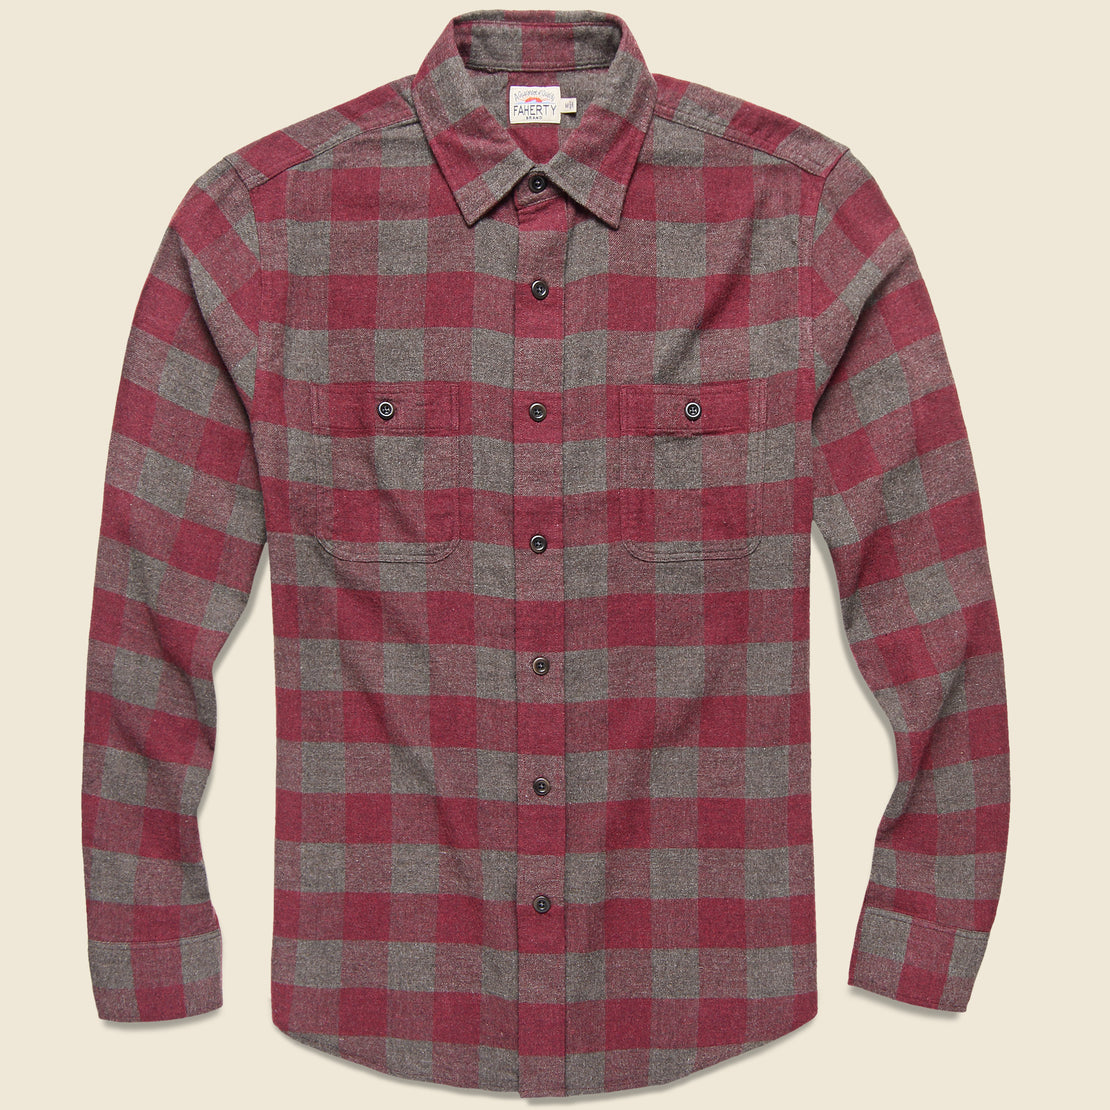 Faherty Brushed Alpine Flannel - Wine/Chestnut Buffalo